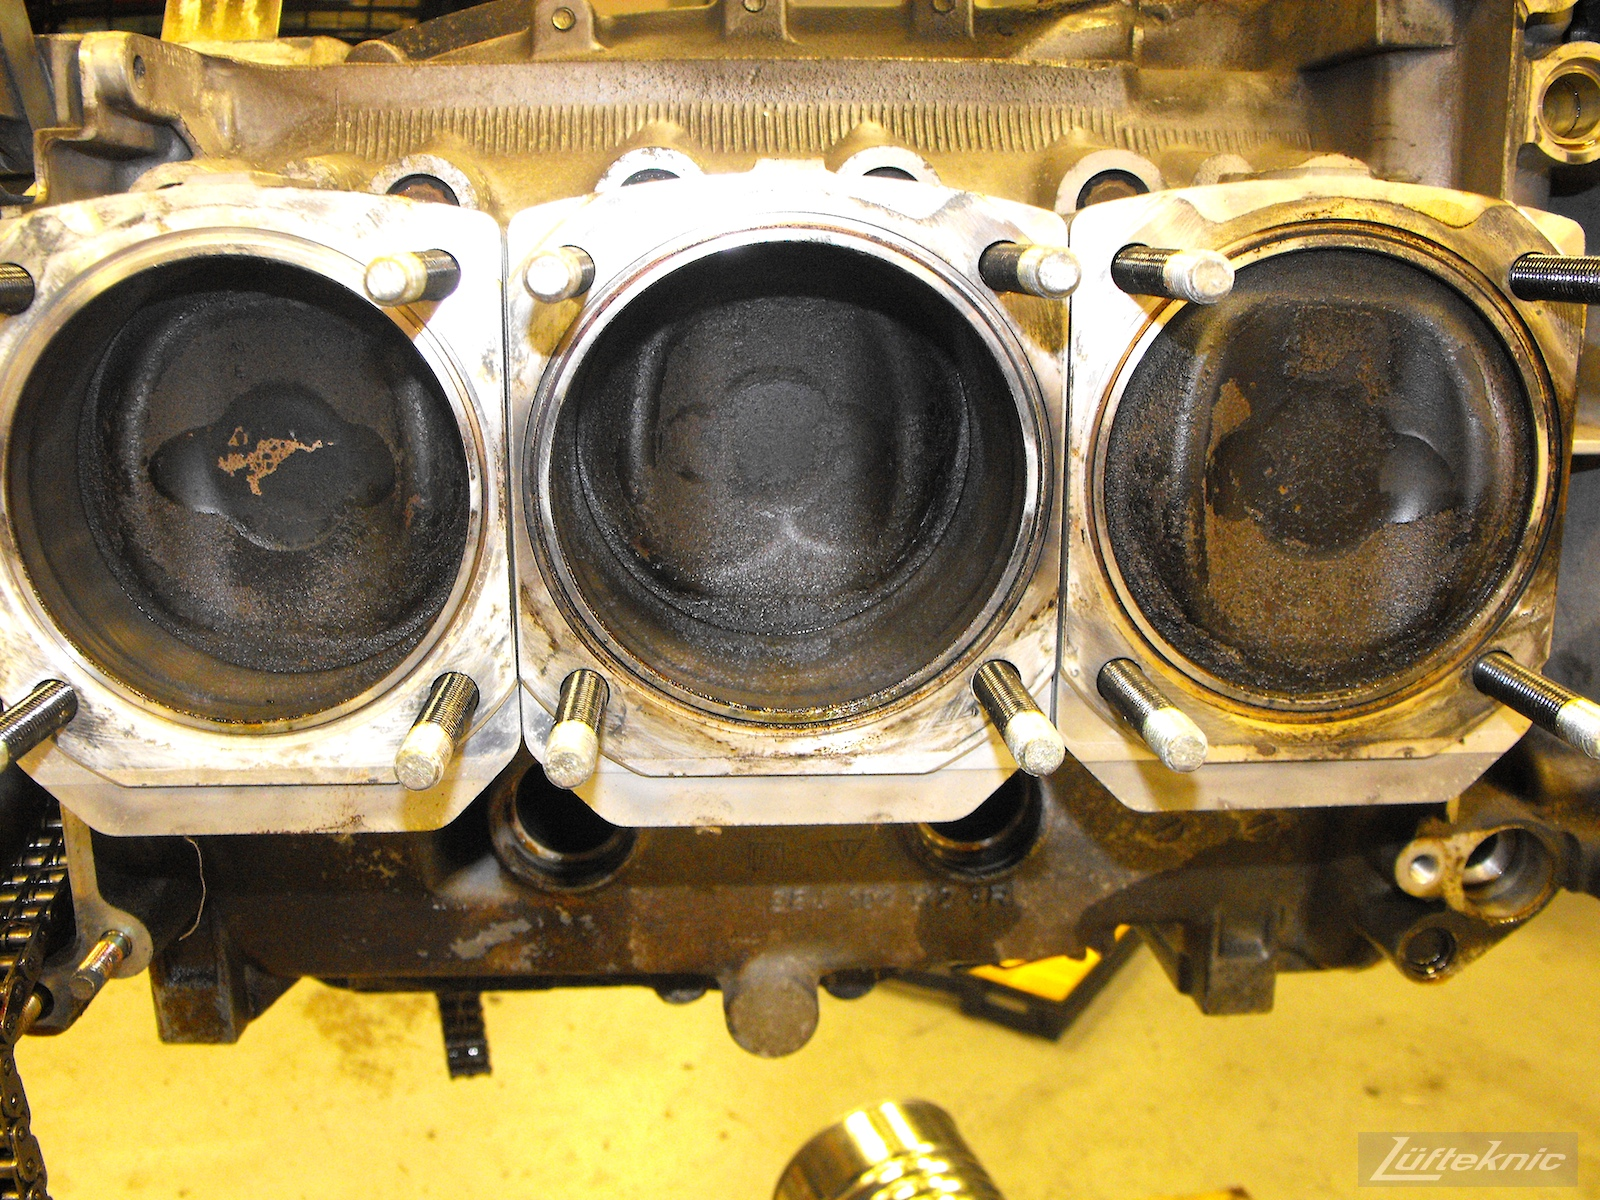 Carbon build up on top of pistons on a 993 Turbo